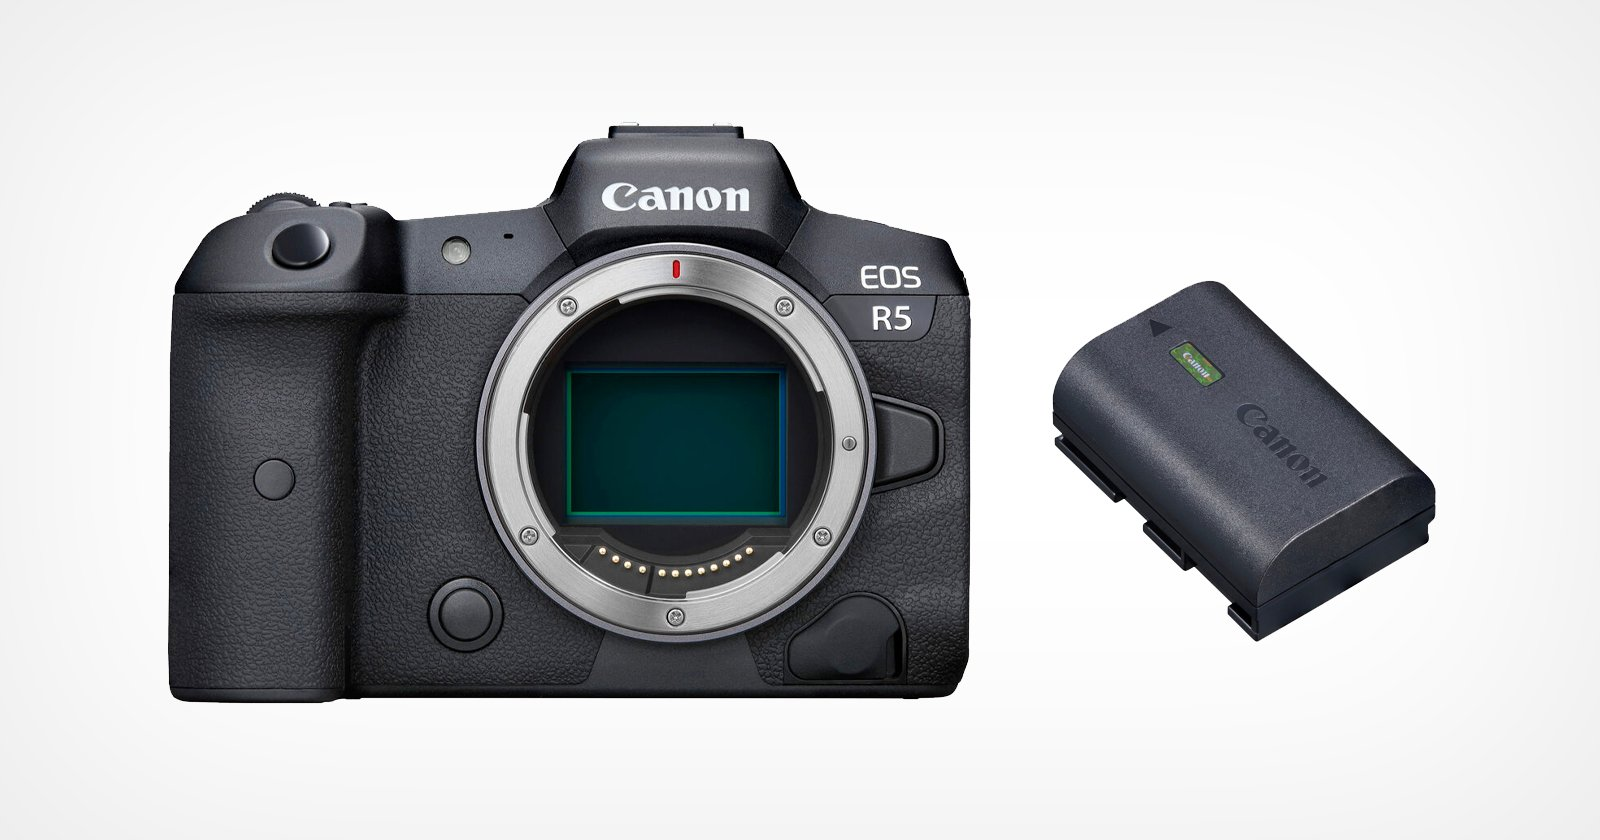 Exhaustive Test Shows Battery Performance Differences in EOS R5